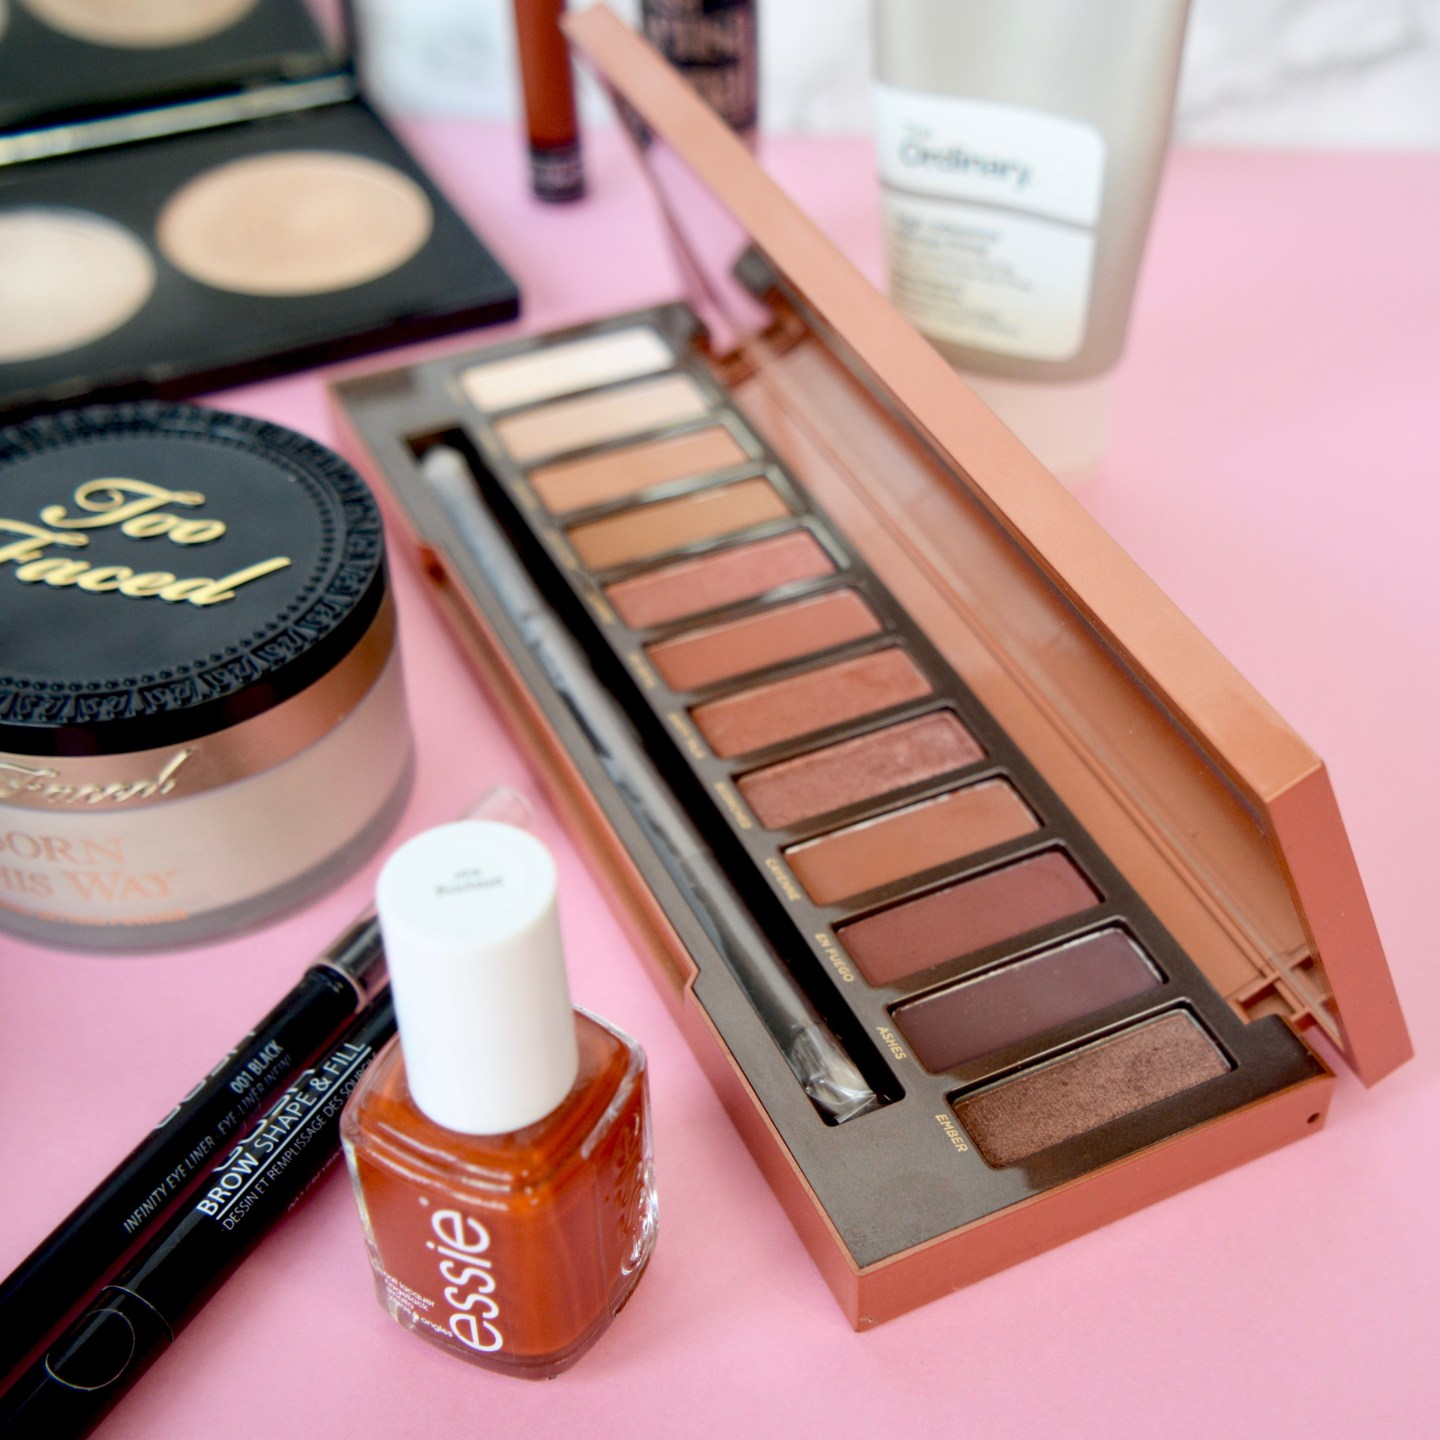 2017 Beauty Favourites - Urban Decay Naked Heat palette